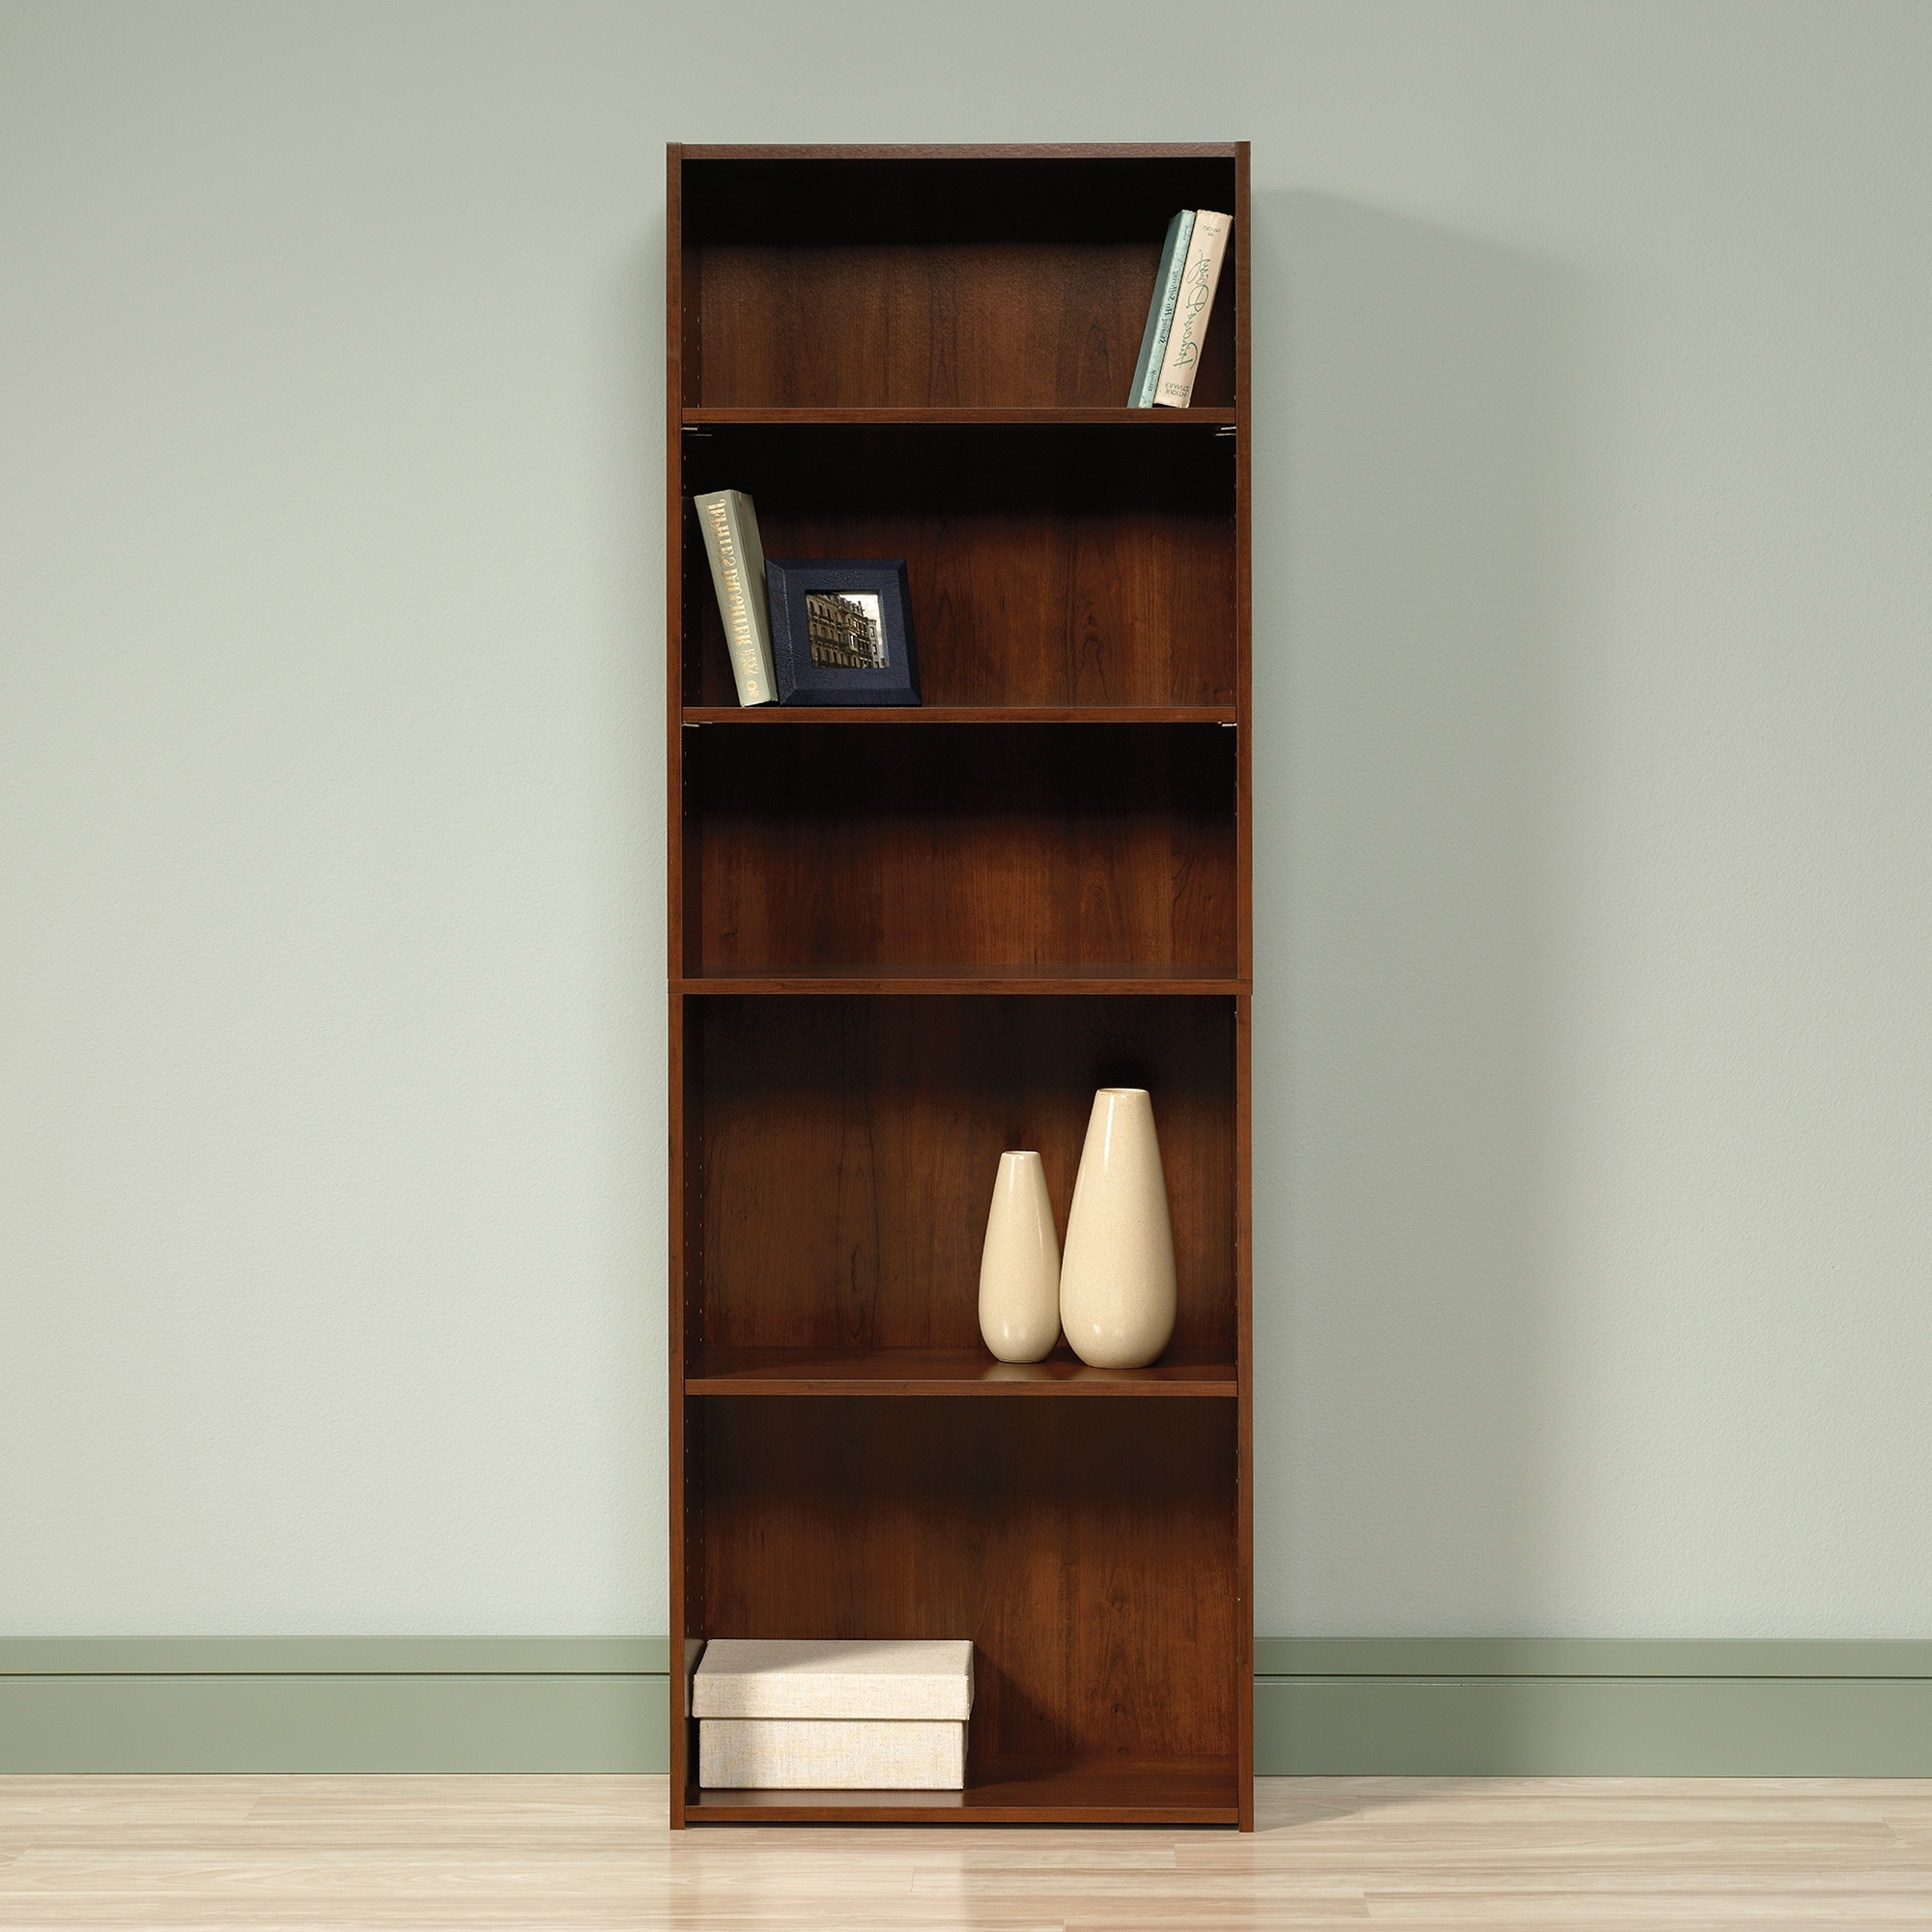 Sauder Regarding Sauder 5 Shelf Bookcases (View 11 of 15)